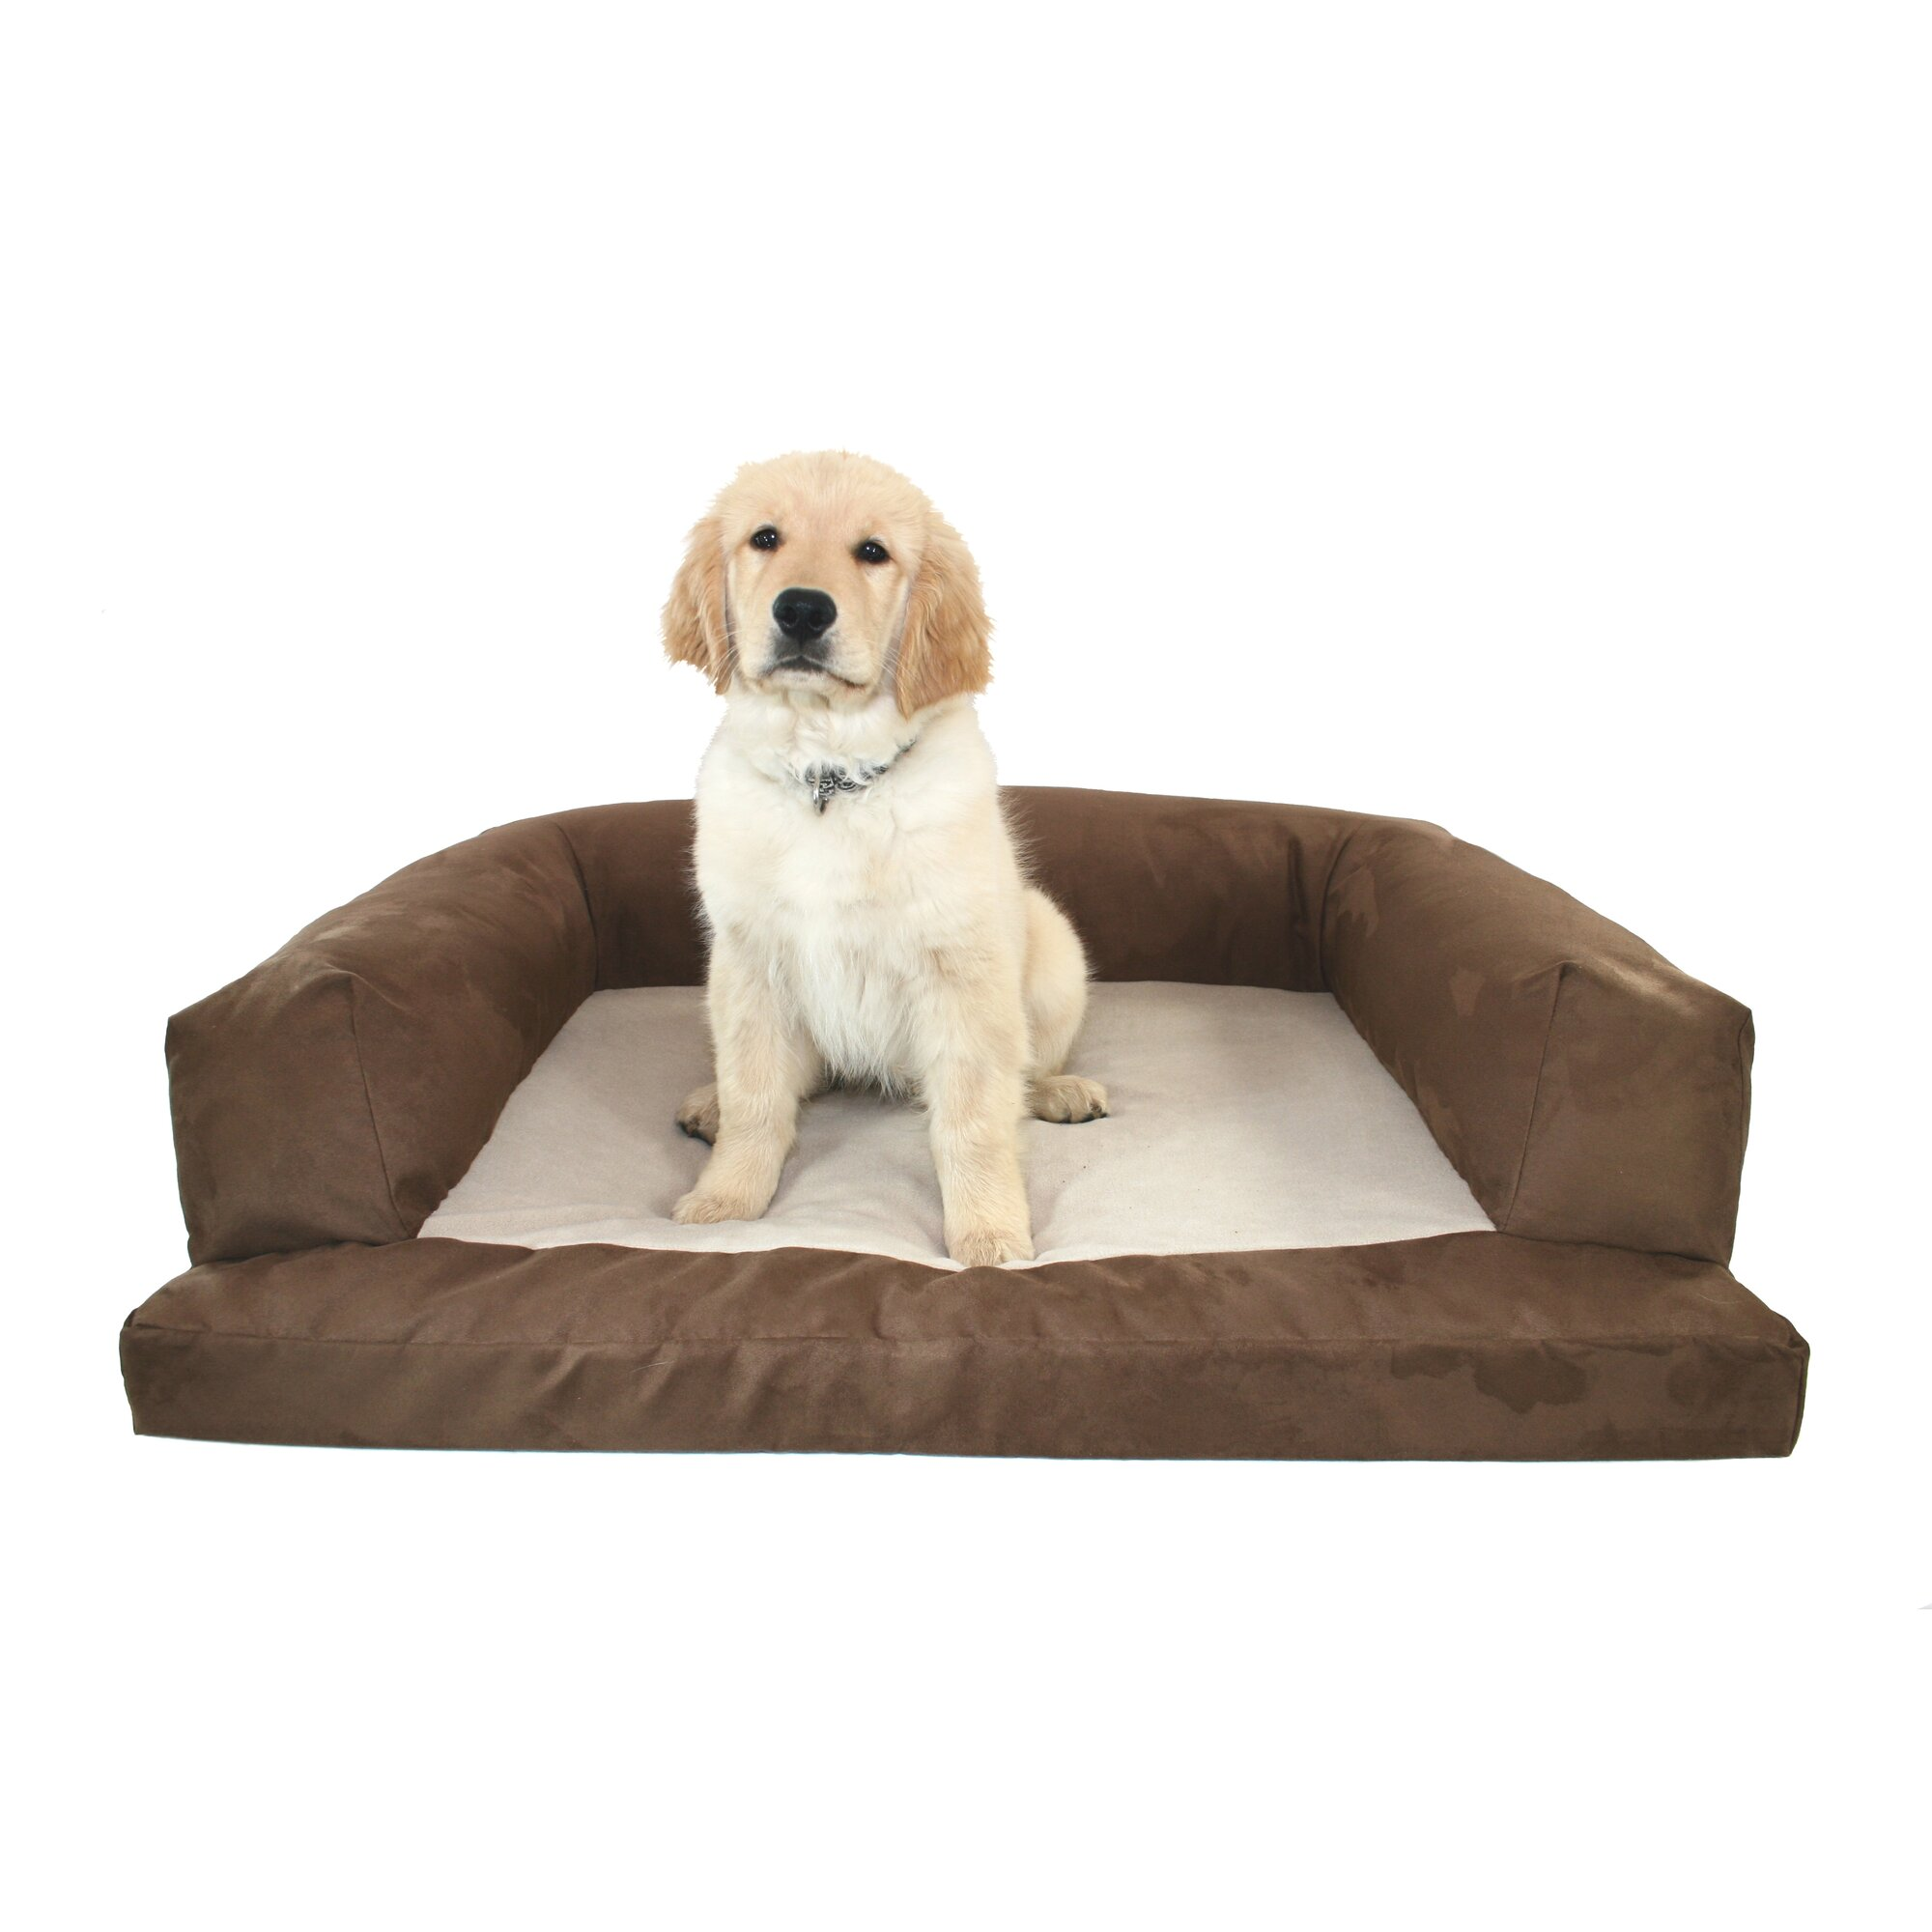 Buddys Bunk Beds Small Pet Bed By Etsy Baxter Couch Bolster